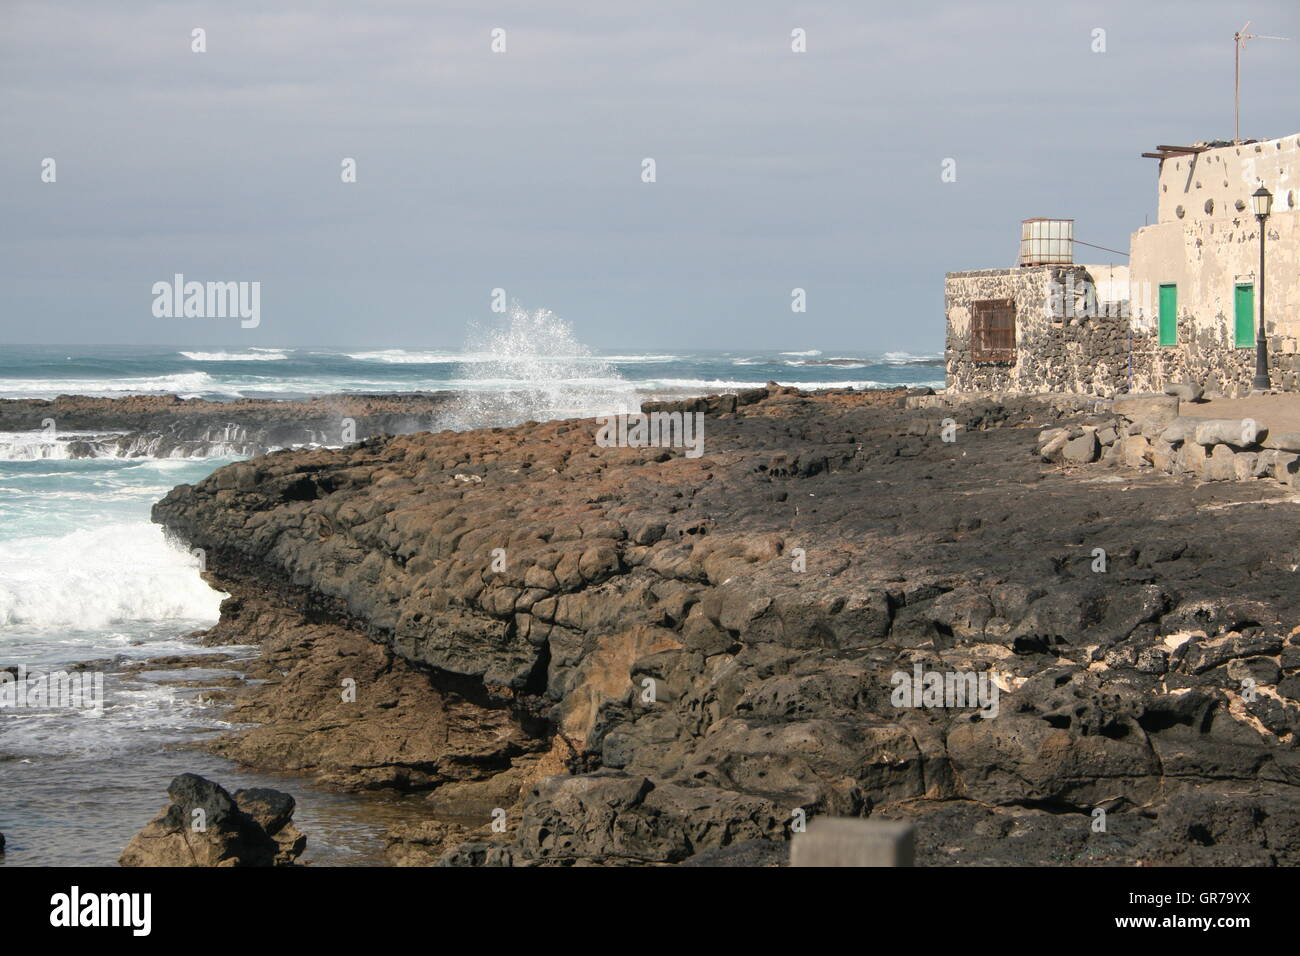 Forces Of Nature In Fuerteventura - Stock Image